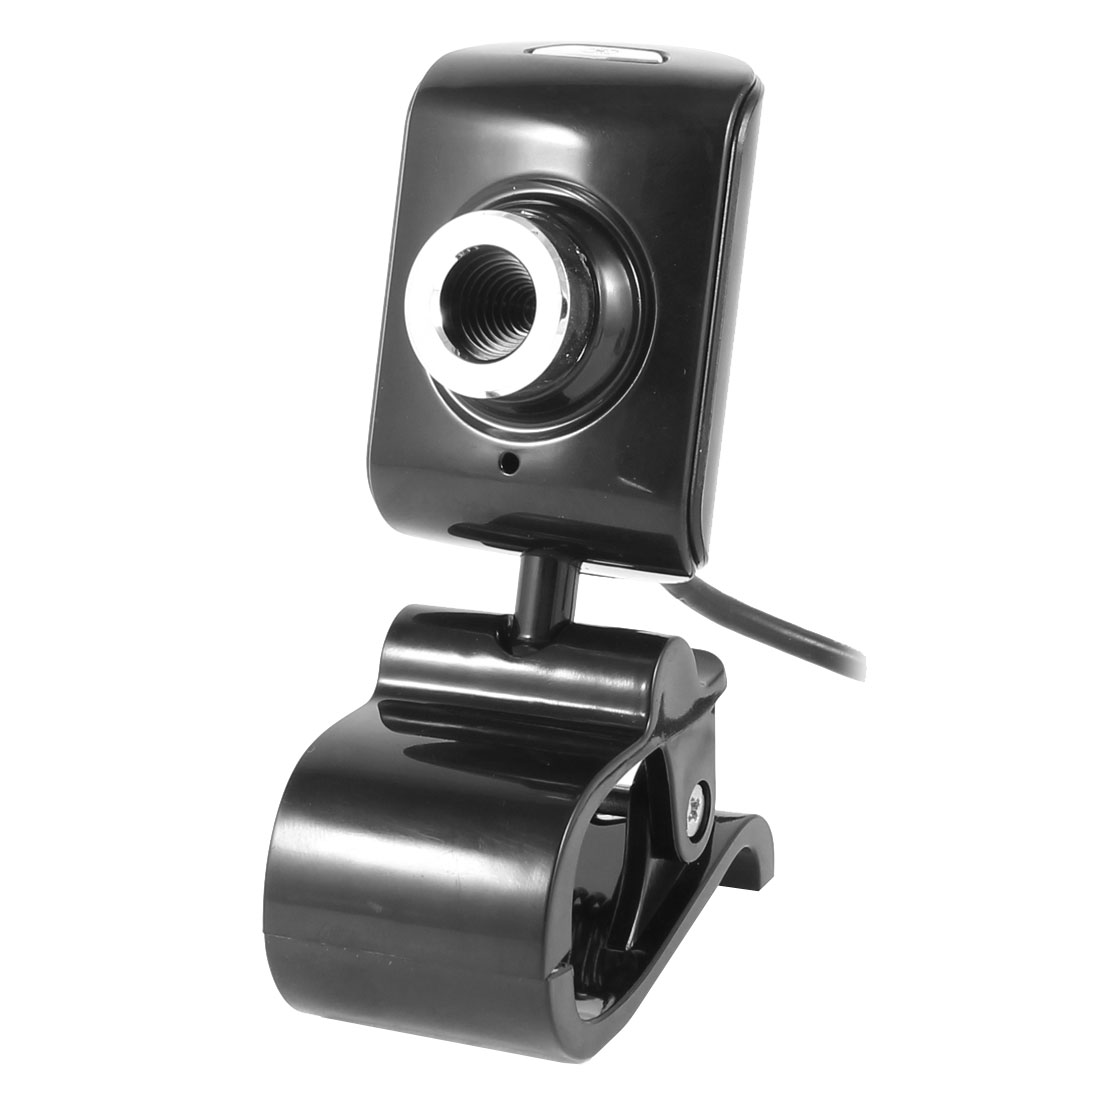 Clip on 1004x1004 1.3 Mega Pixels Camera USB2.0 MIC Webcam Black for PC